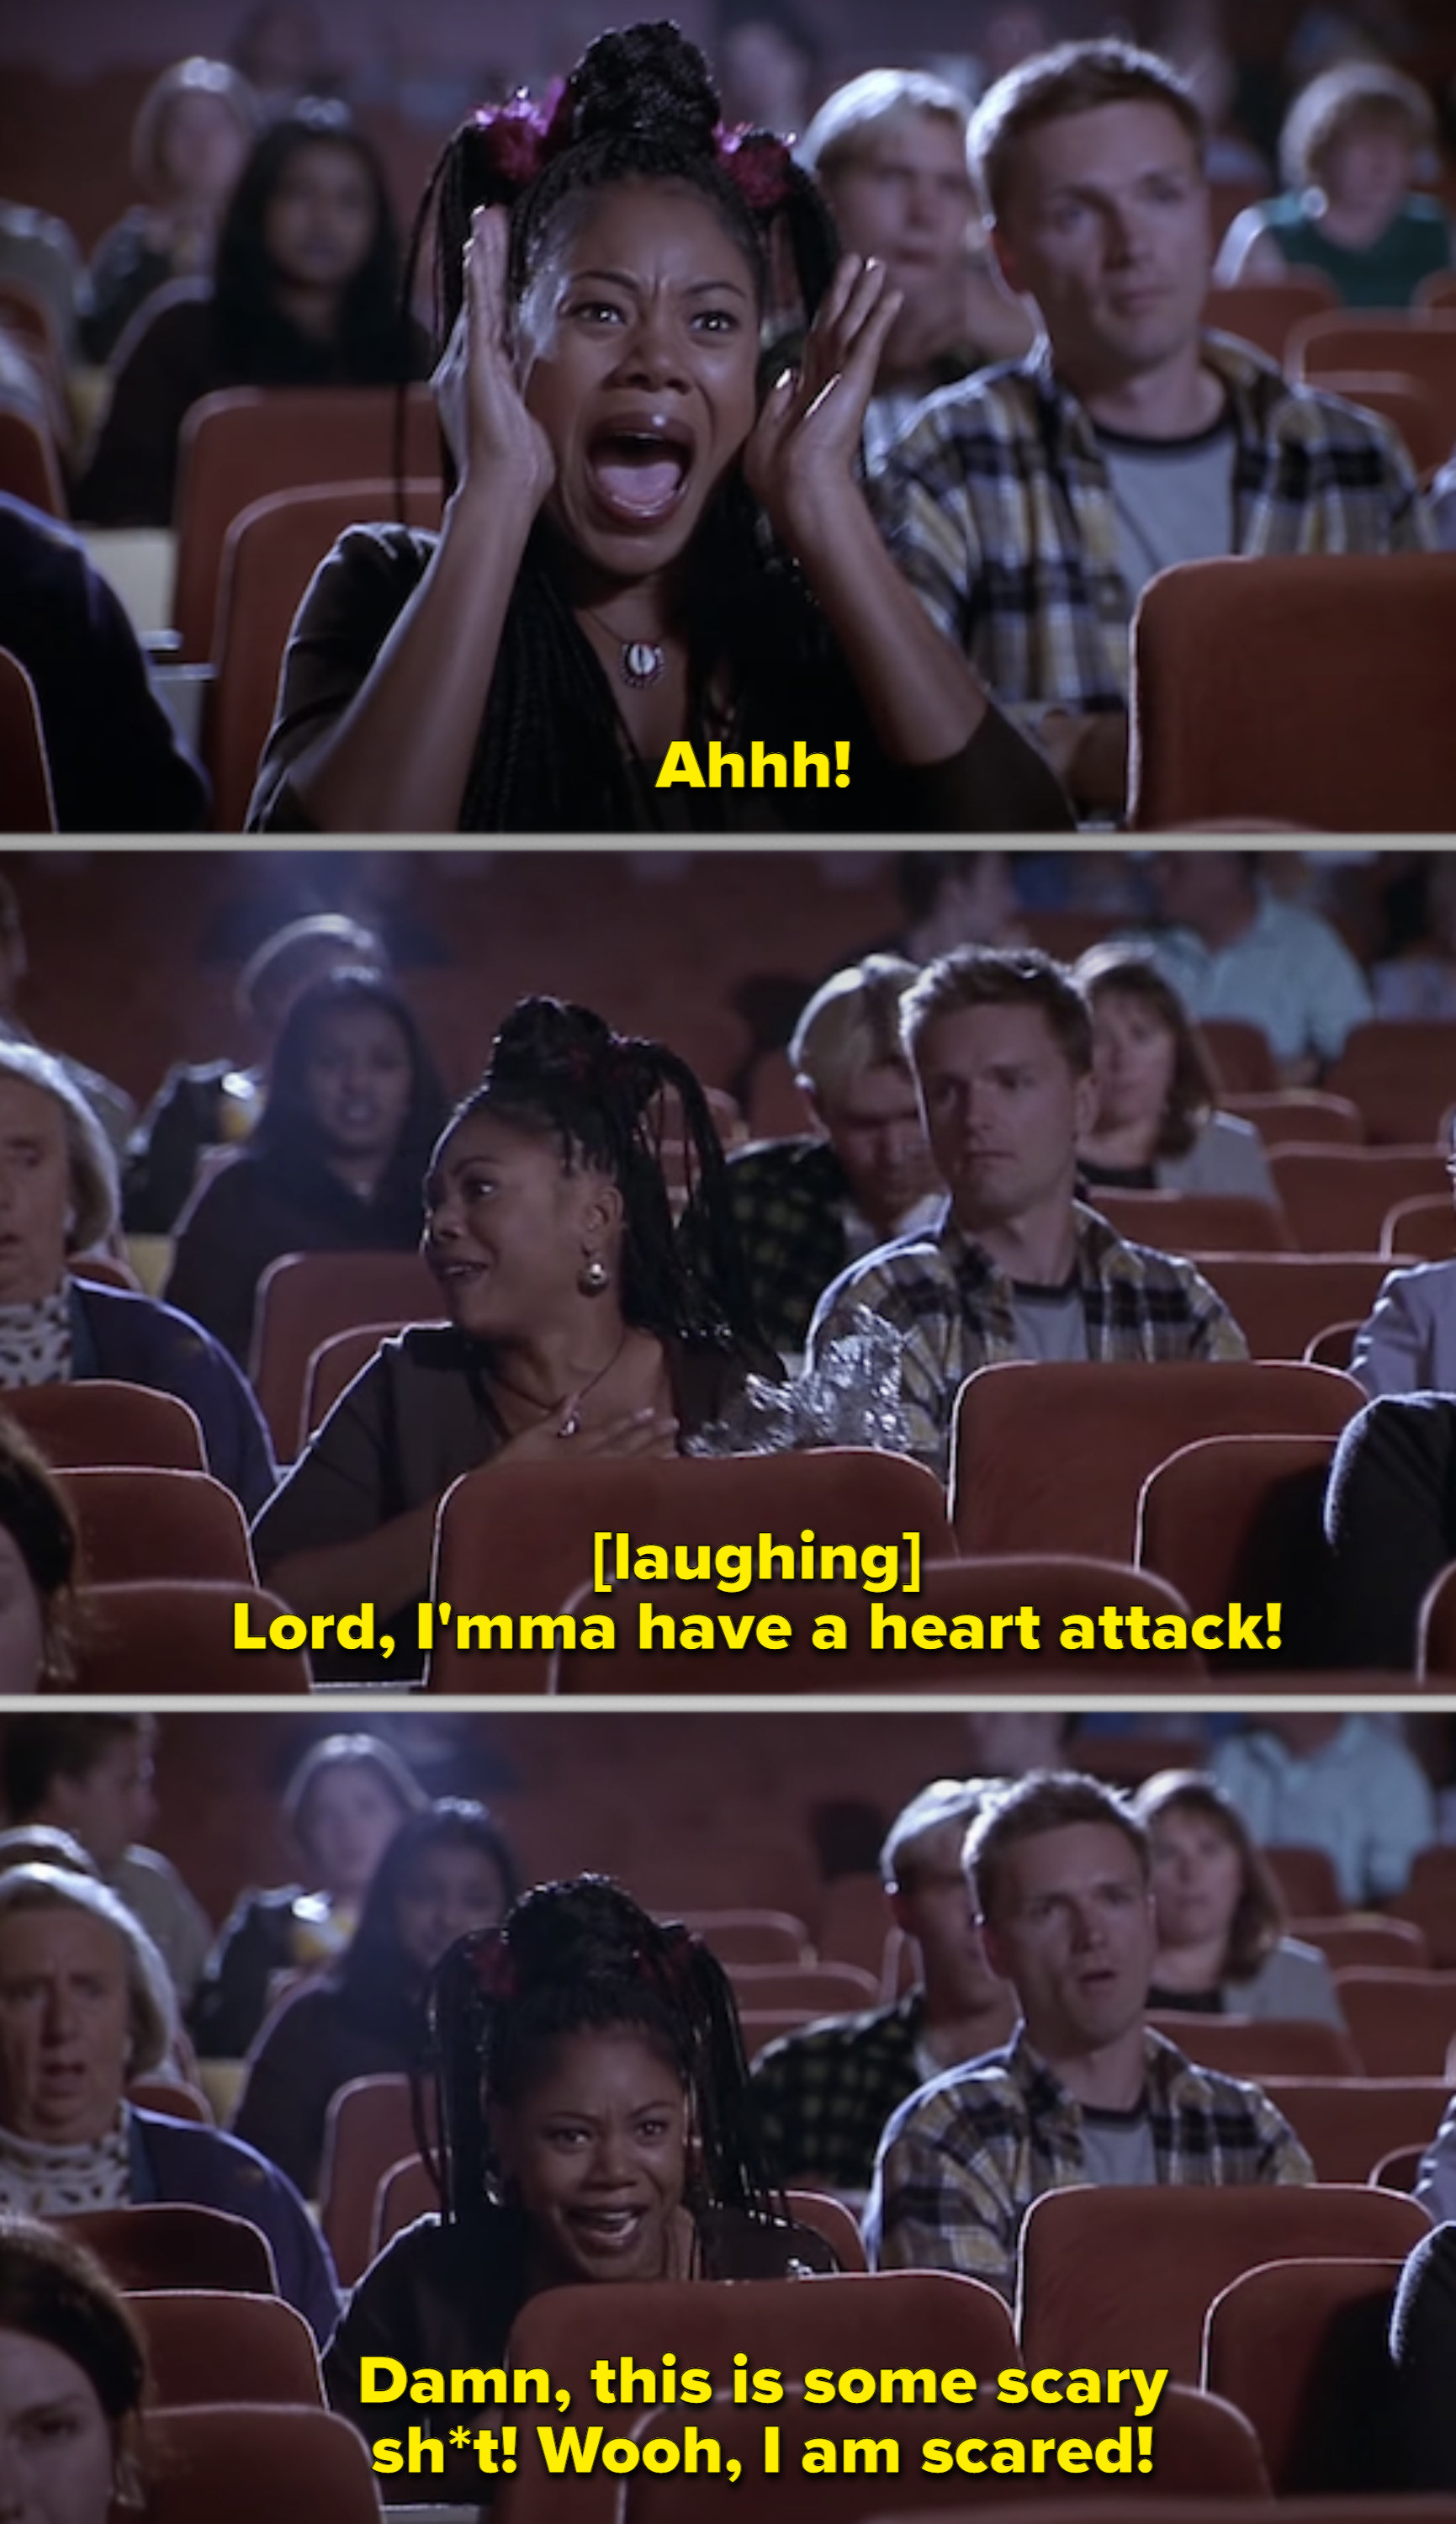 Brenda Meeks from the Scary Movie series saved the entire movie, making it look 100% funnier with her perfect comedy timings.